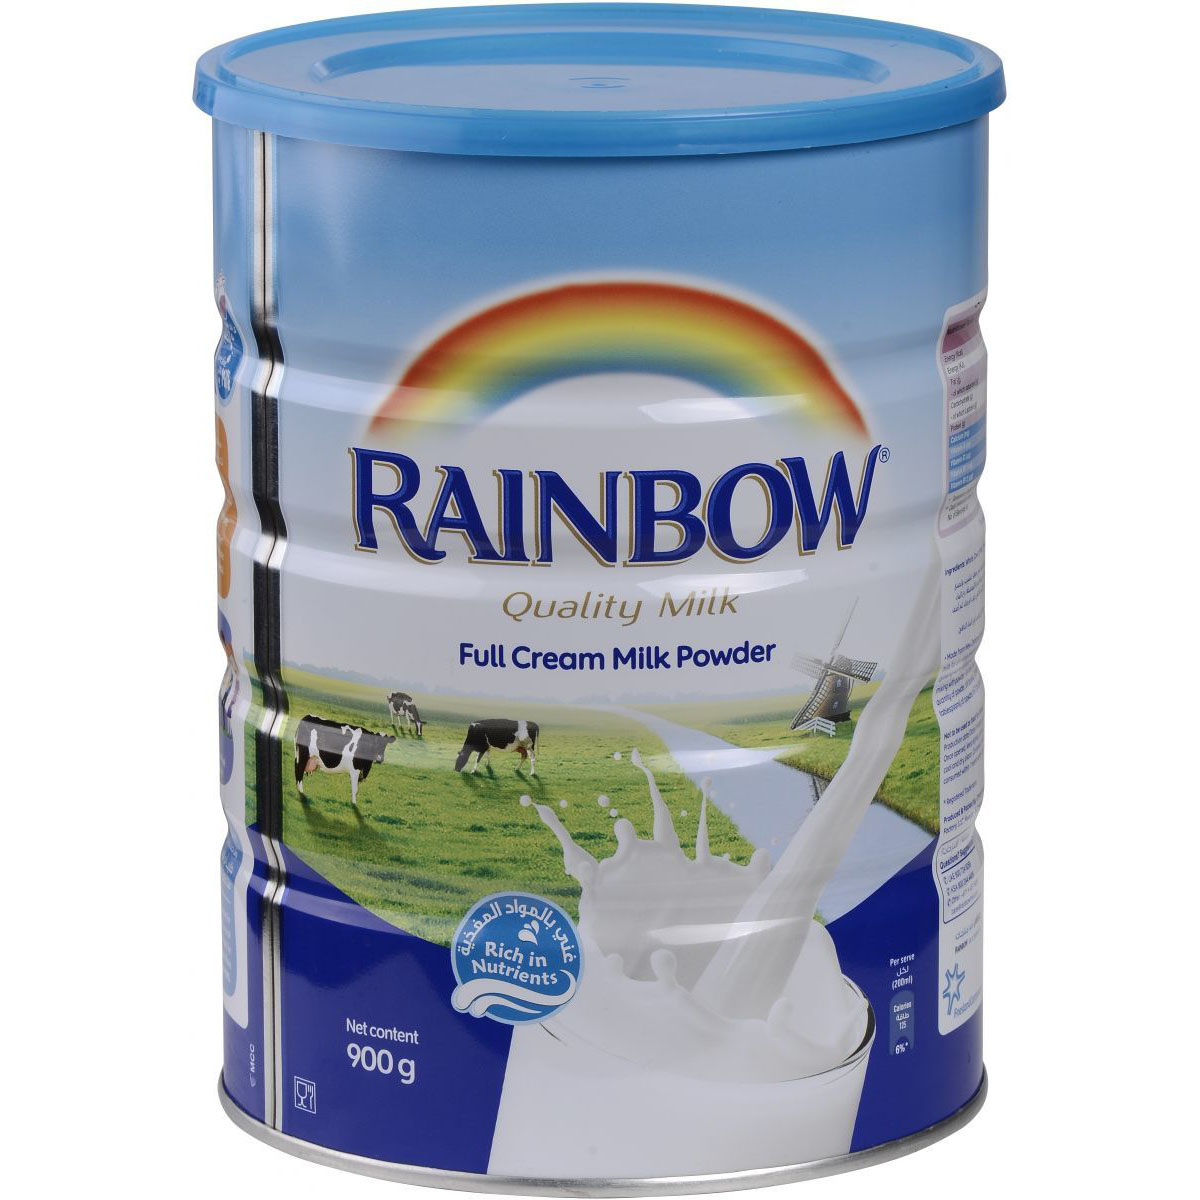 Rainbow Full Cream Milk Powder - 900g (pc)